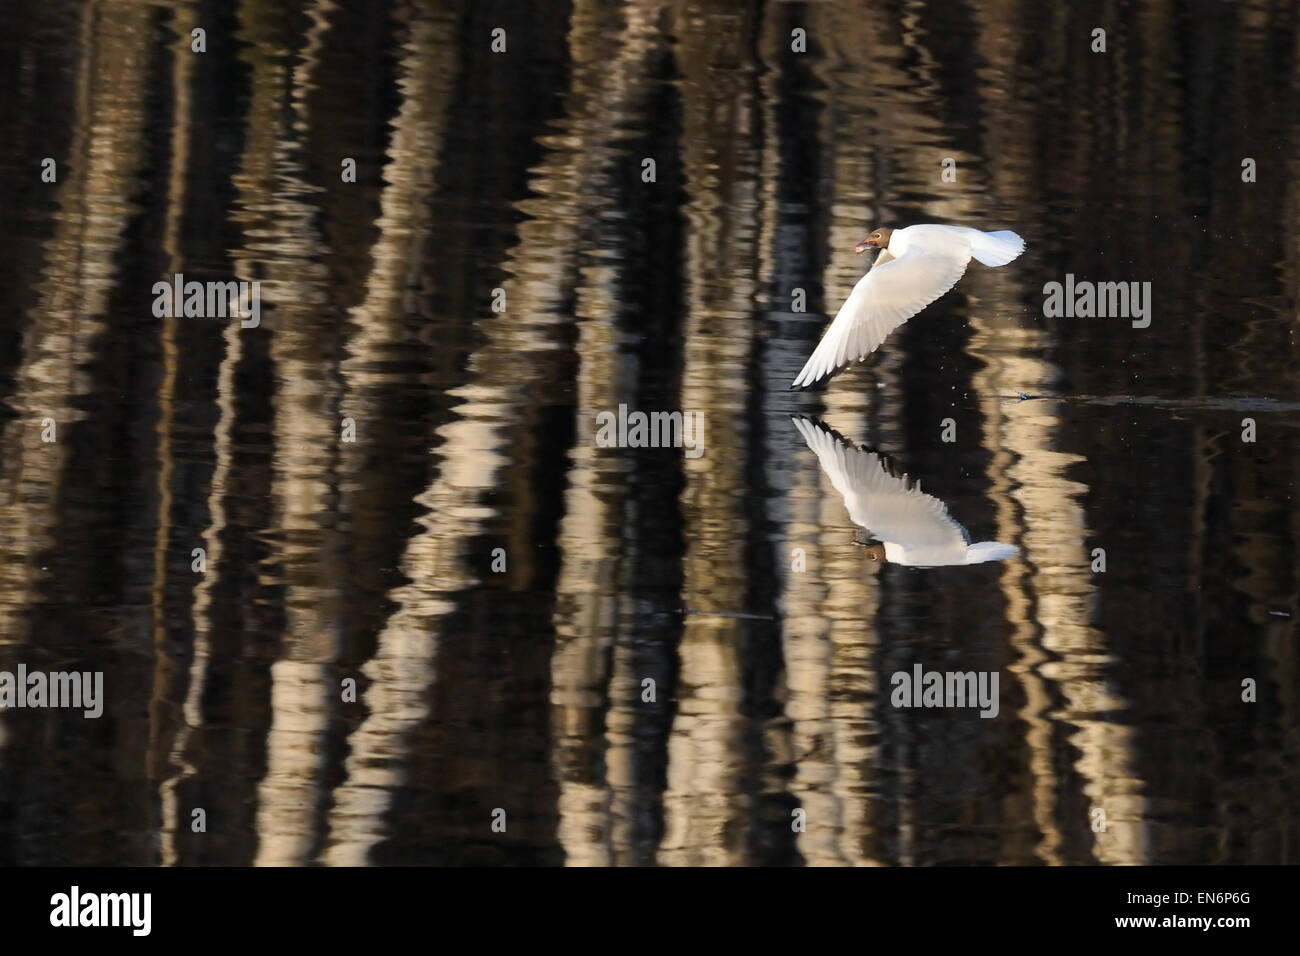 Flying Black-headed gull over the pond with rich environment reflection texture - Stock Image